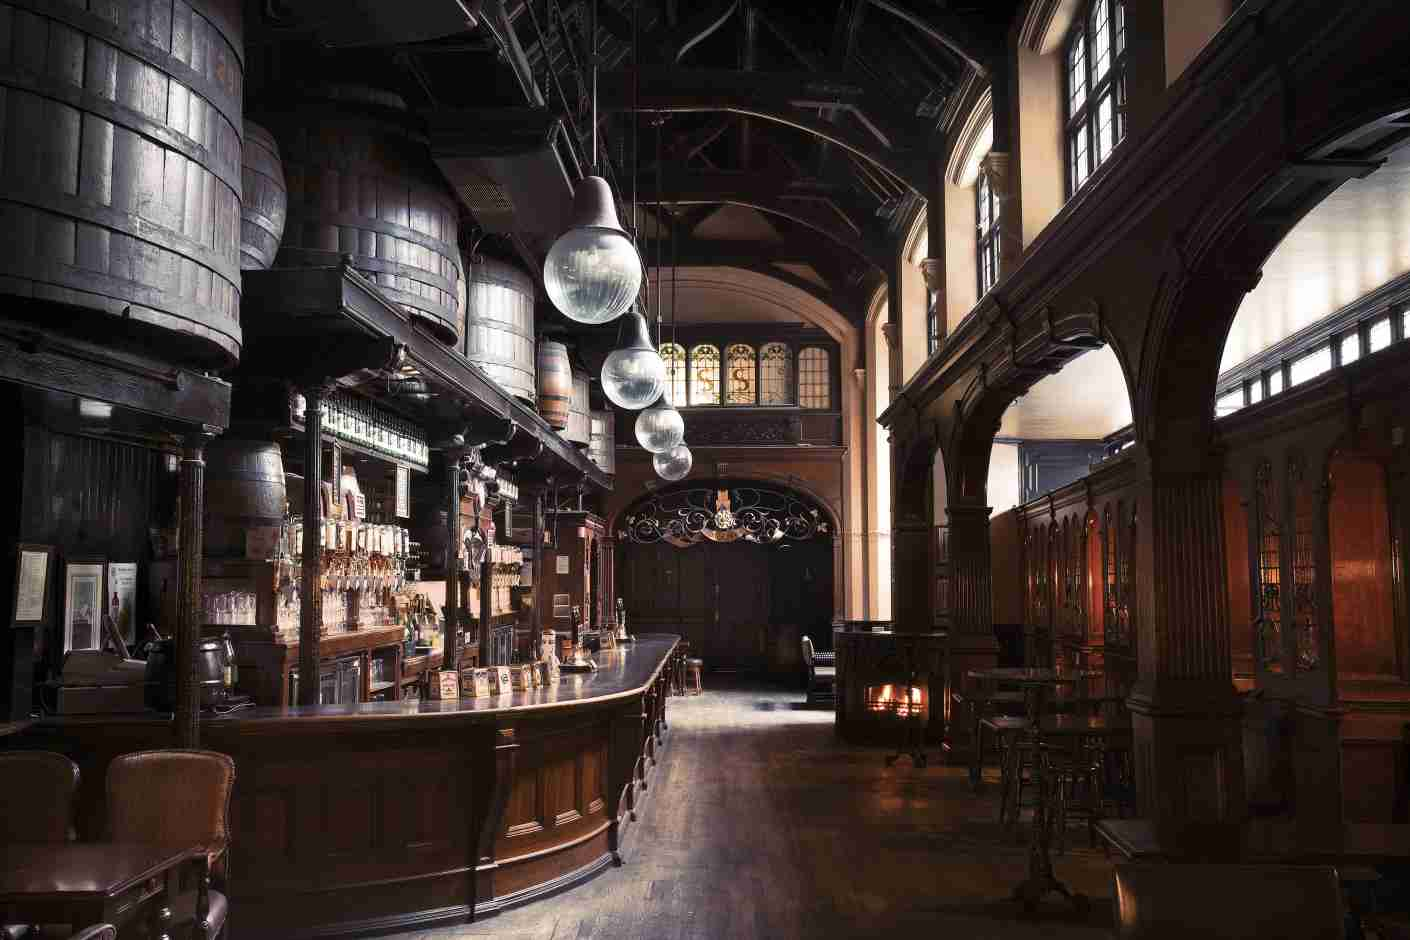 The vaulted main bar at Cittie of Yorke.